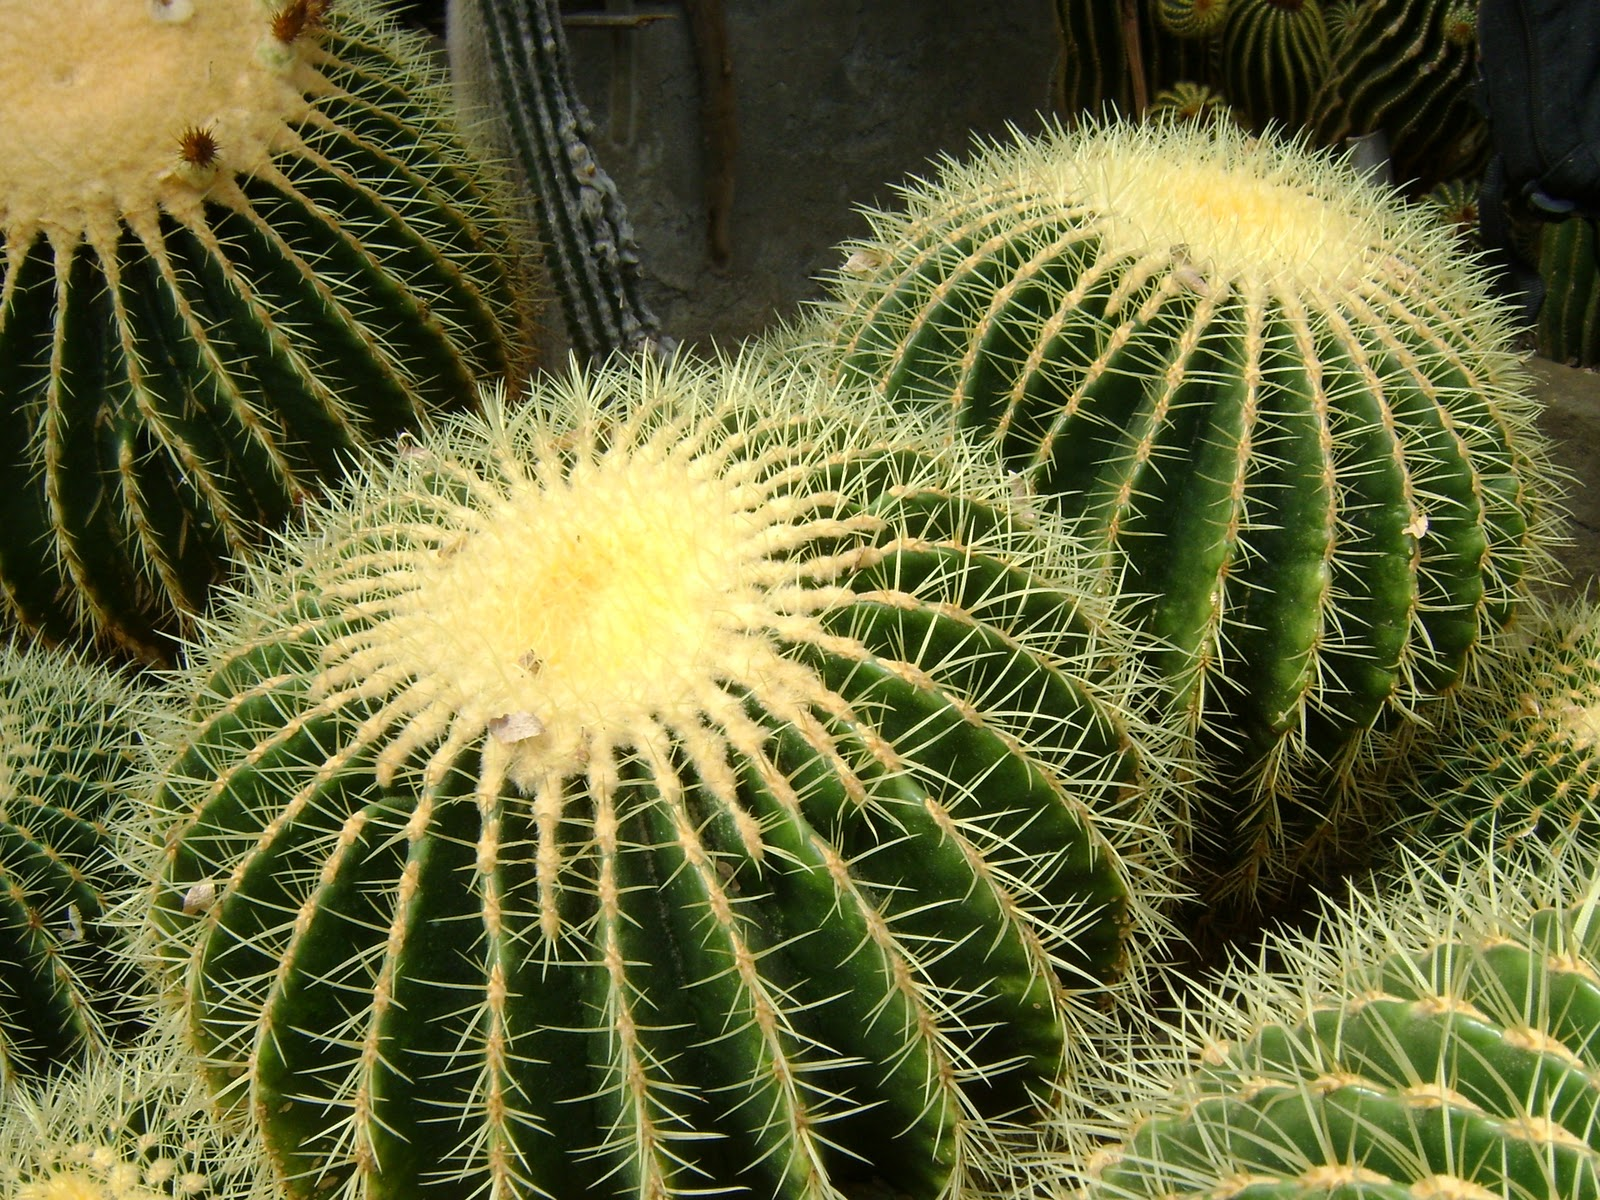 hd cactus wallpapers - photo #12